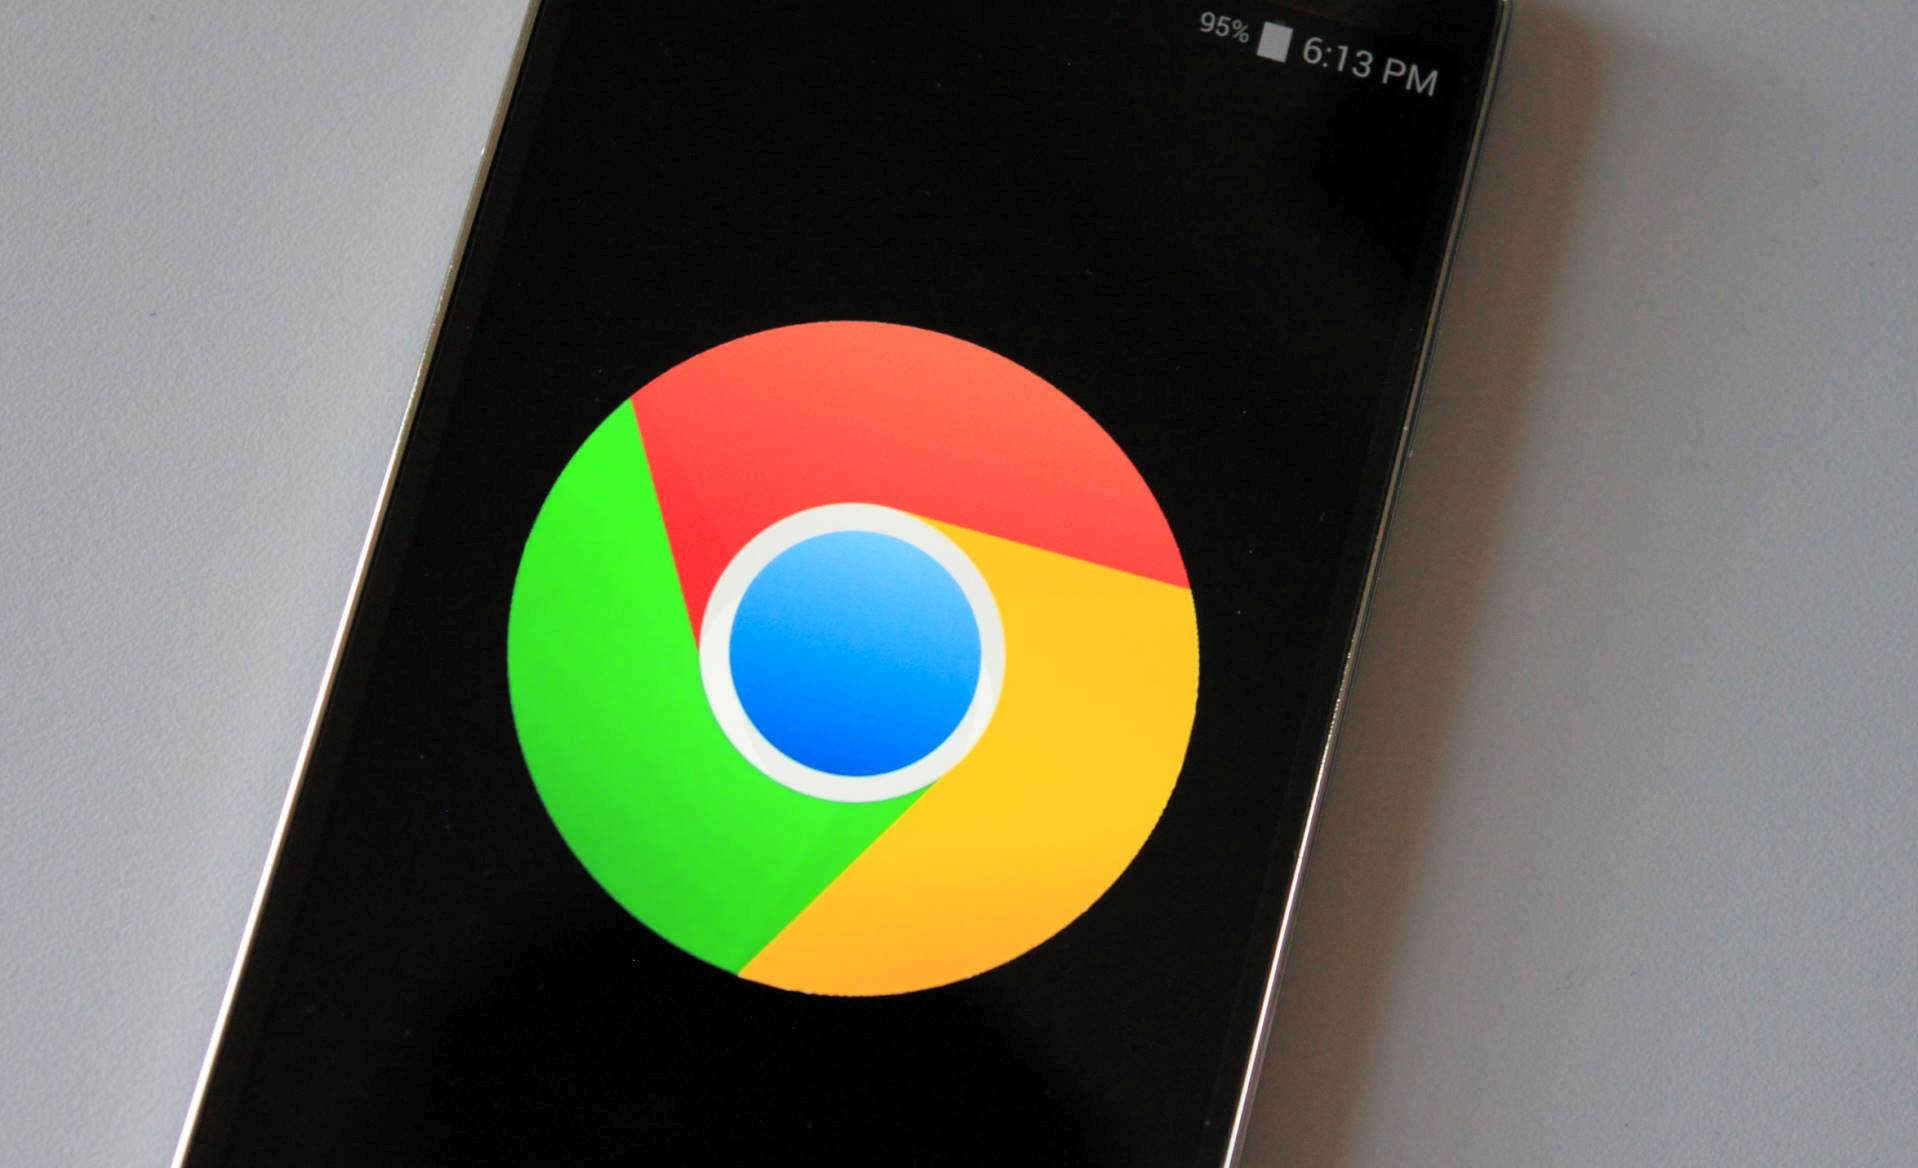 Google is Beta Testing a Bottom URL Bar on Chrome for Android